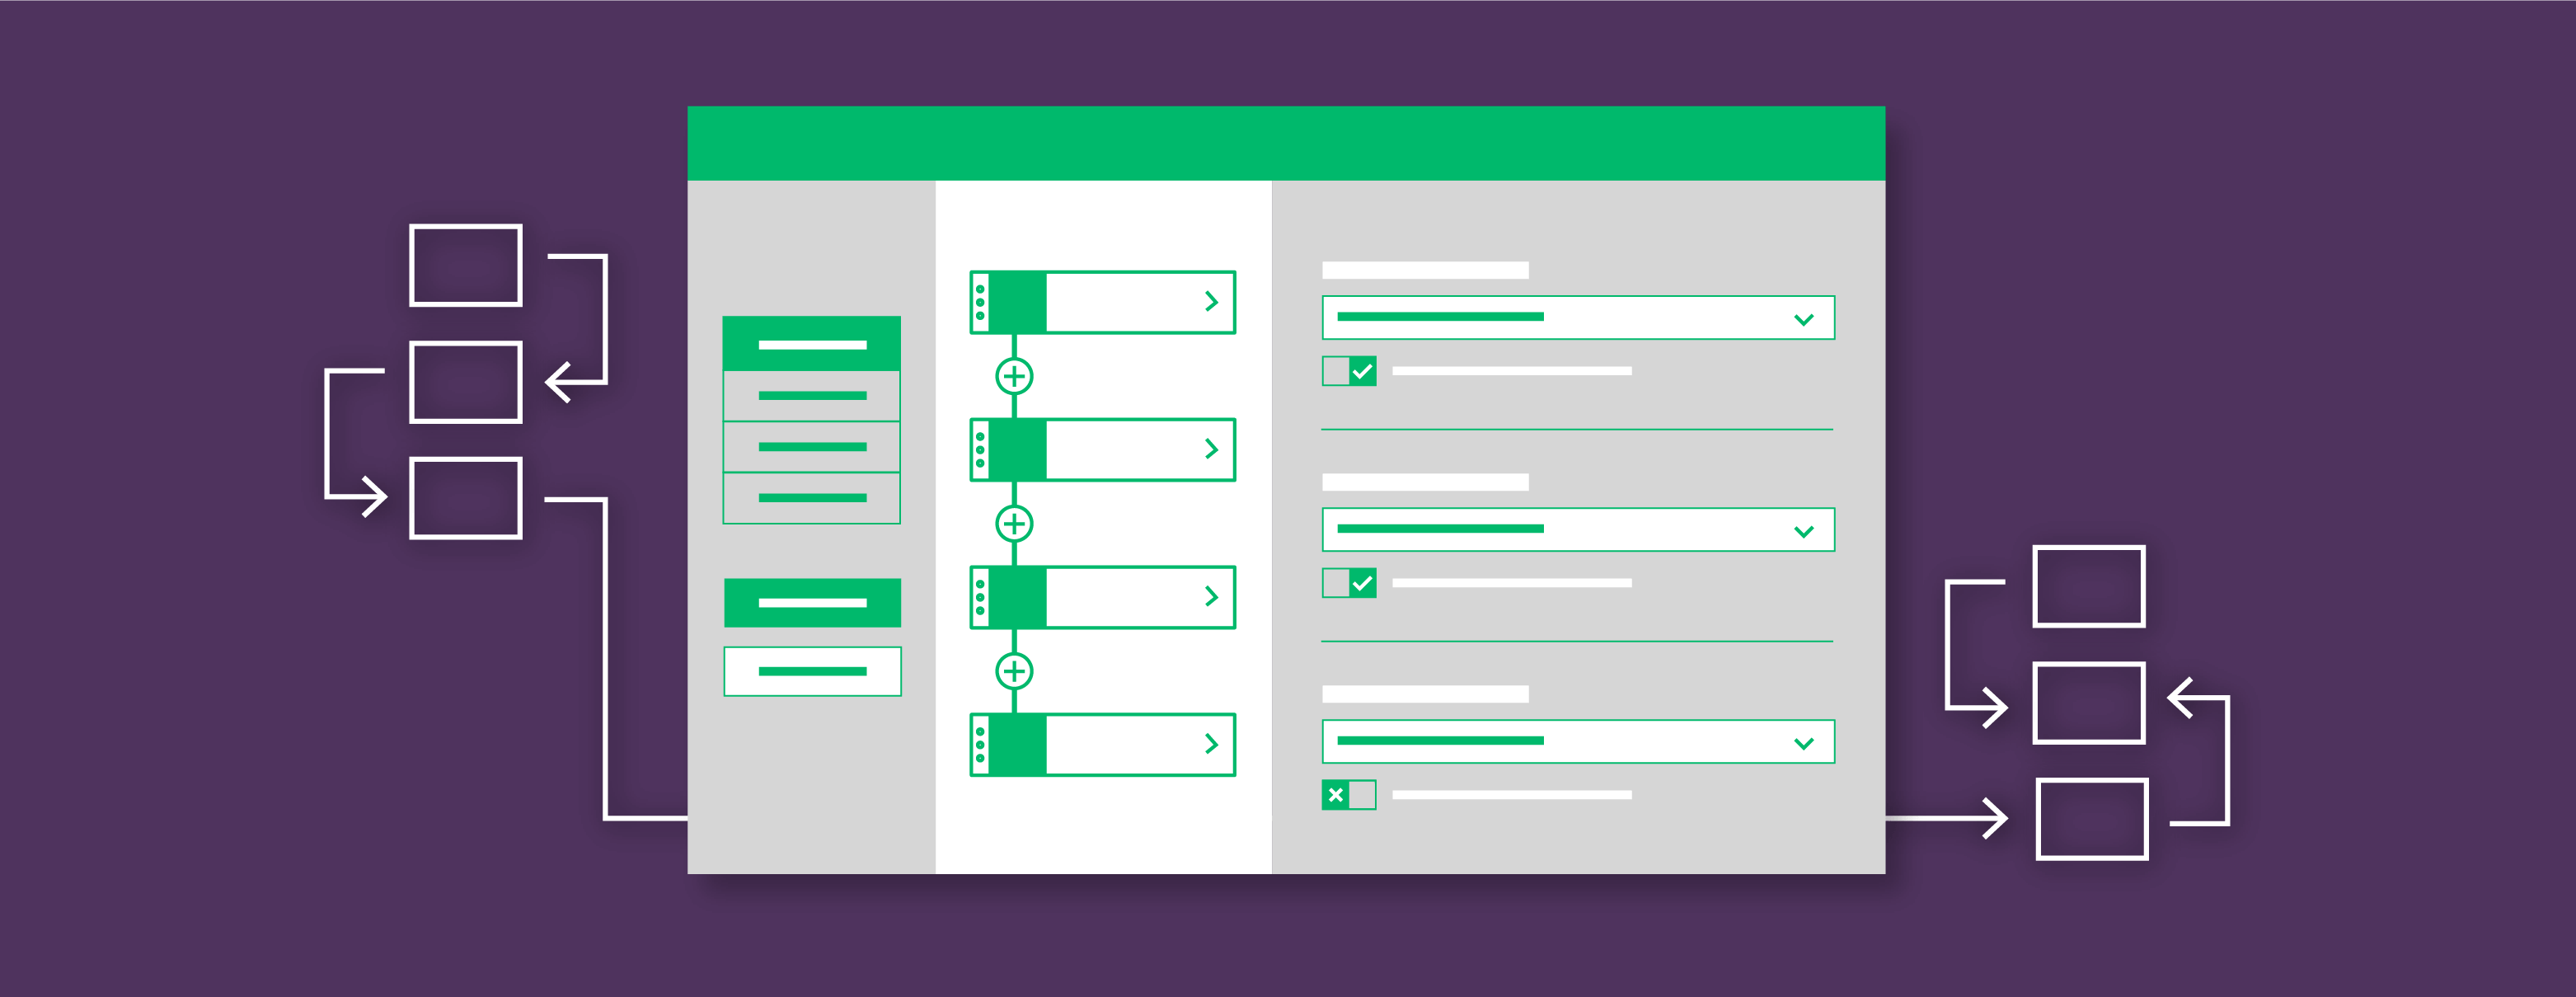 Vuex Nested State